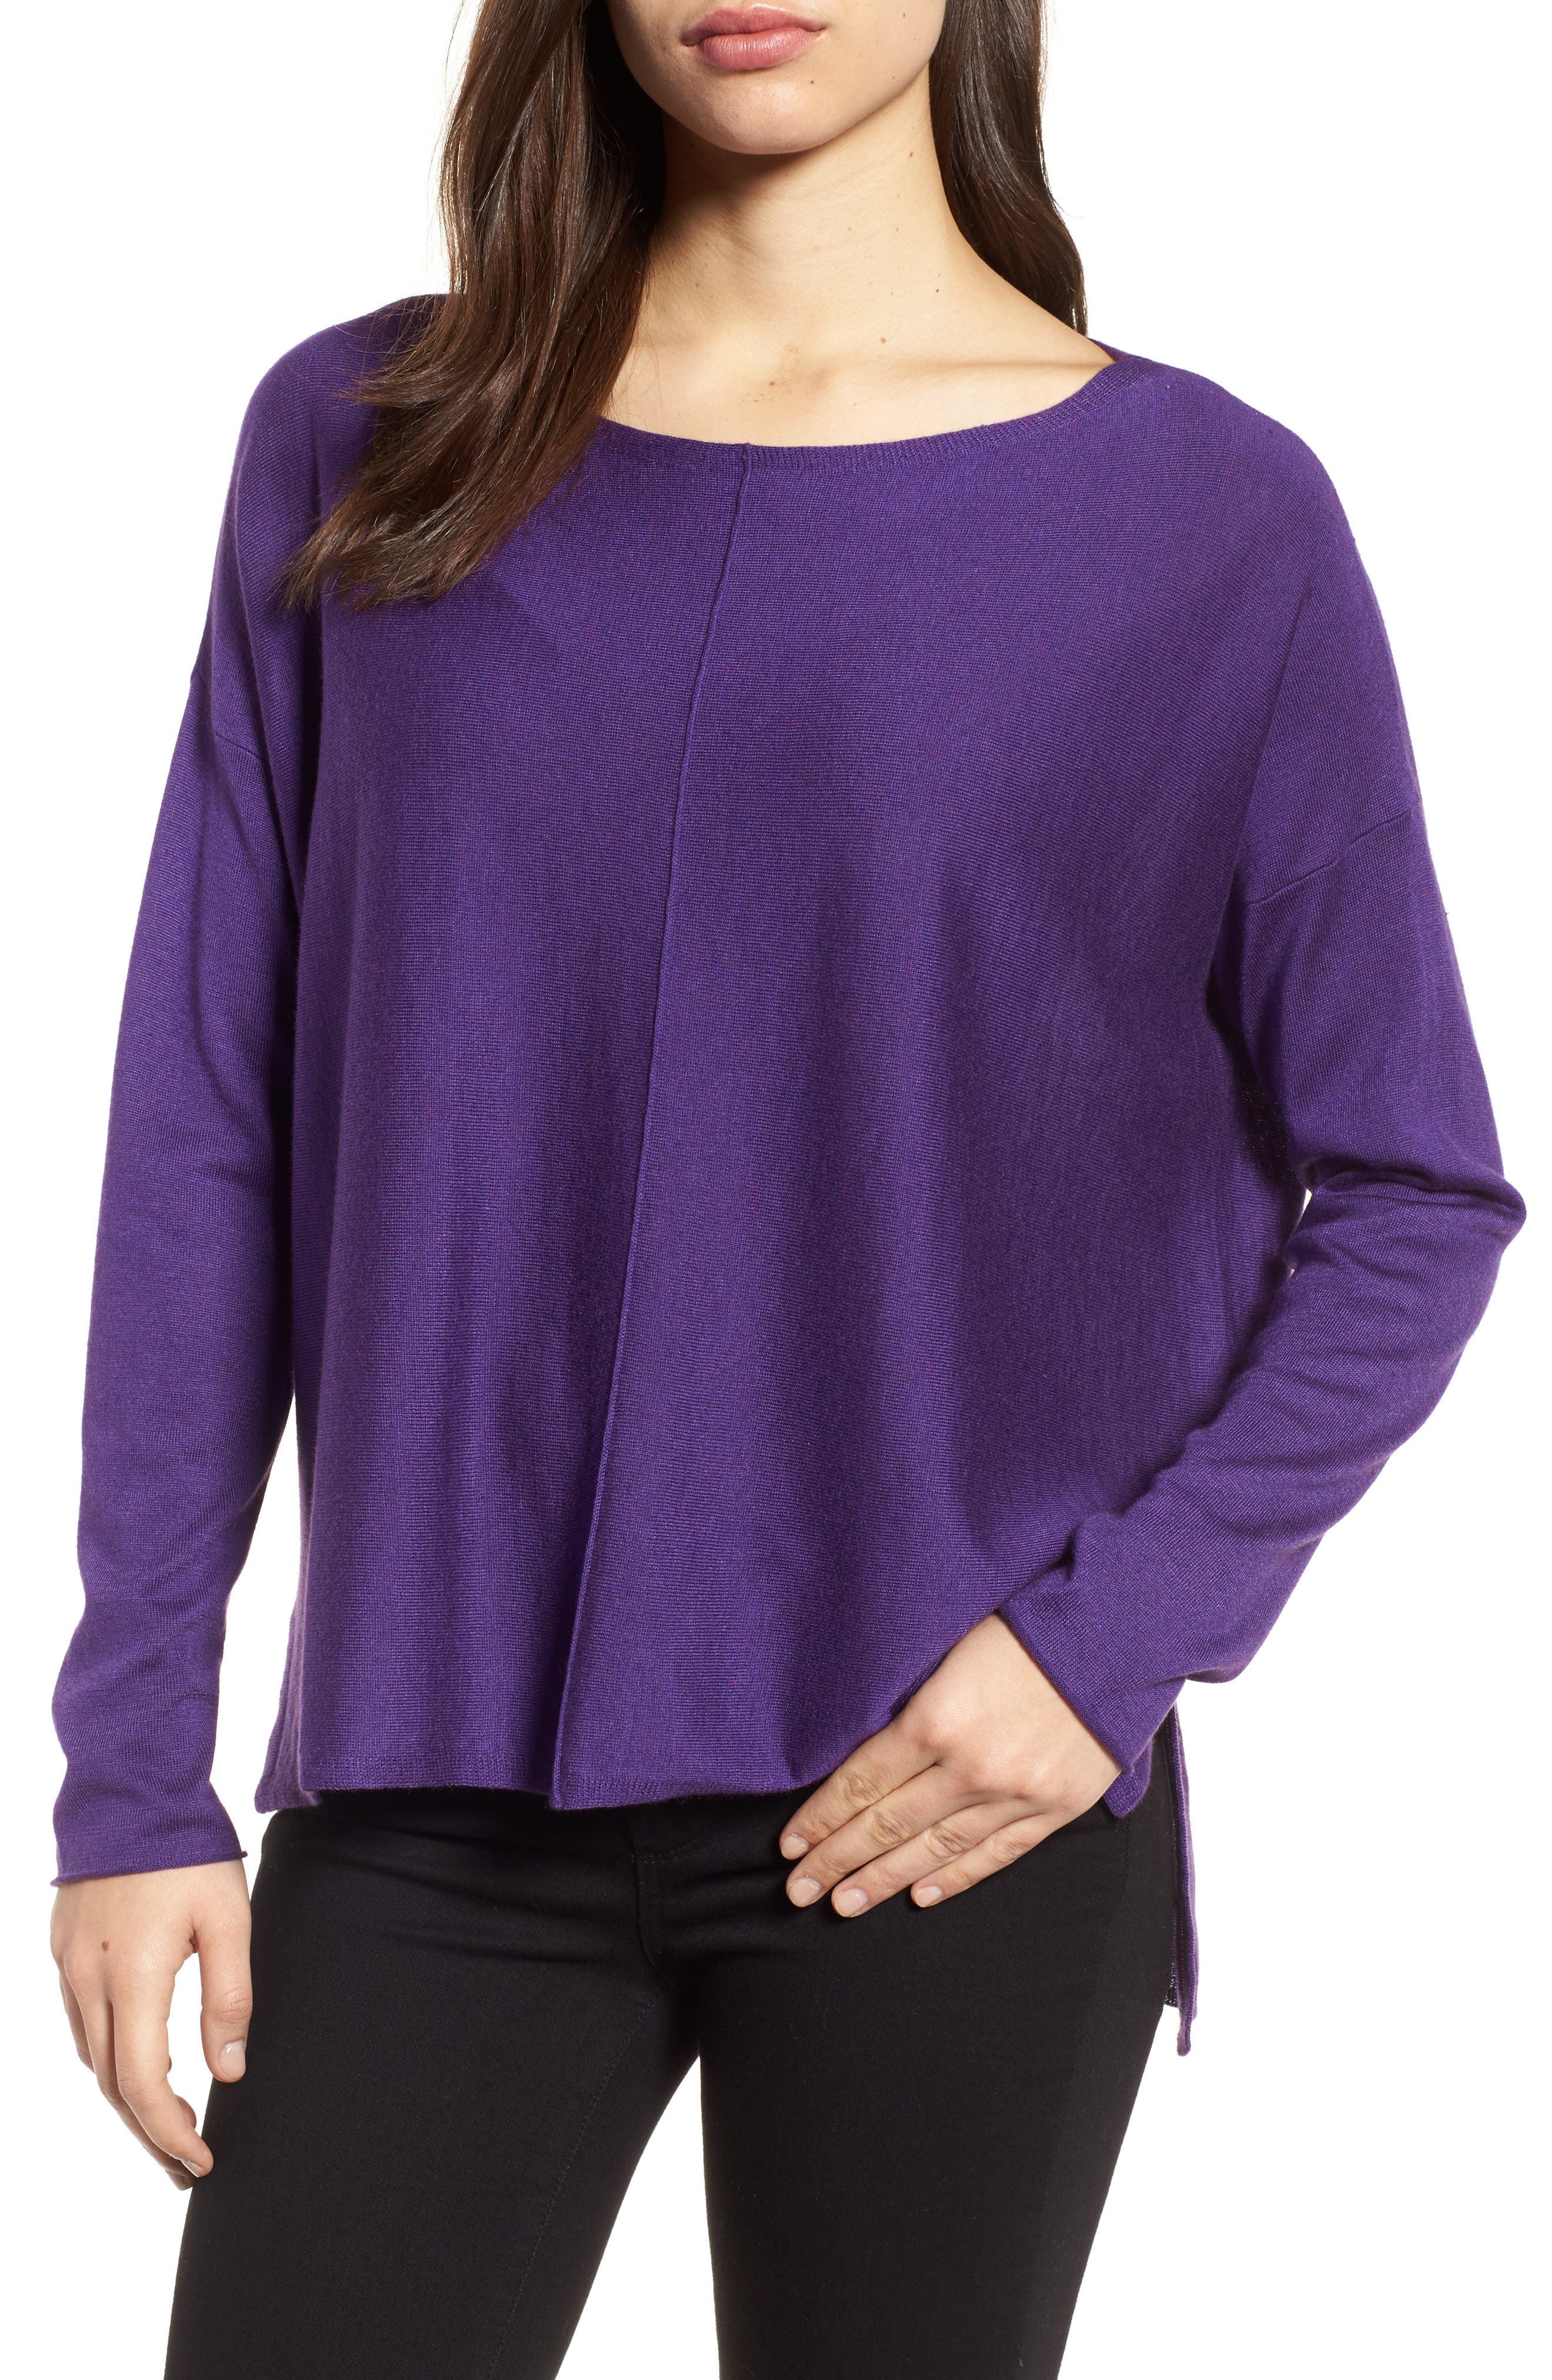 Tencel<sup>®</sup> Lyocell Blend High/Low Sweater,                             Main thumbnail 1, color,                             Ultraviolet